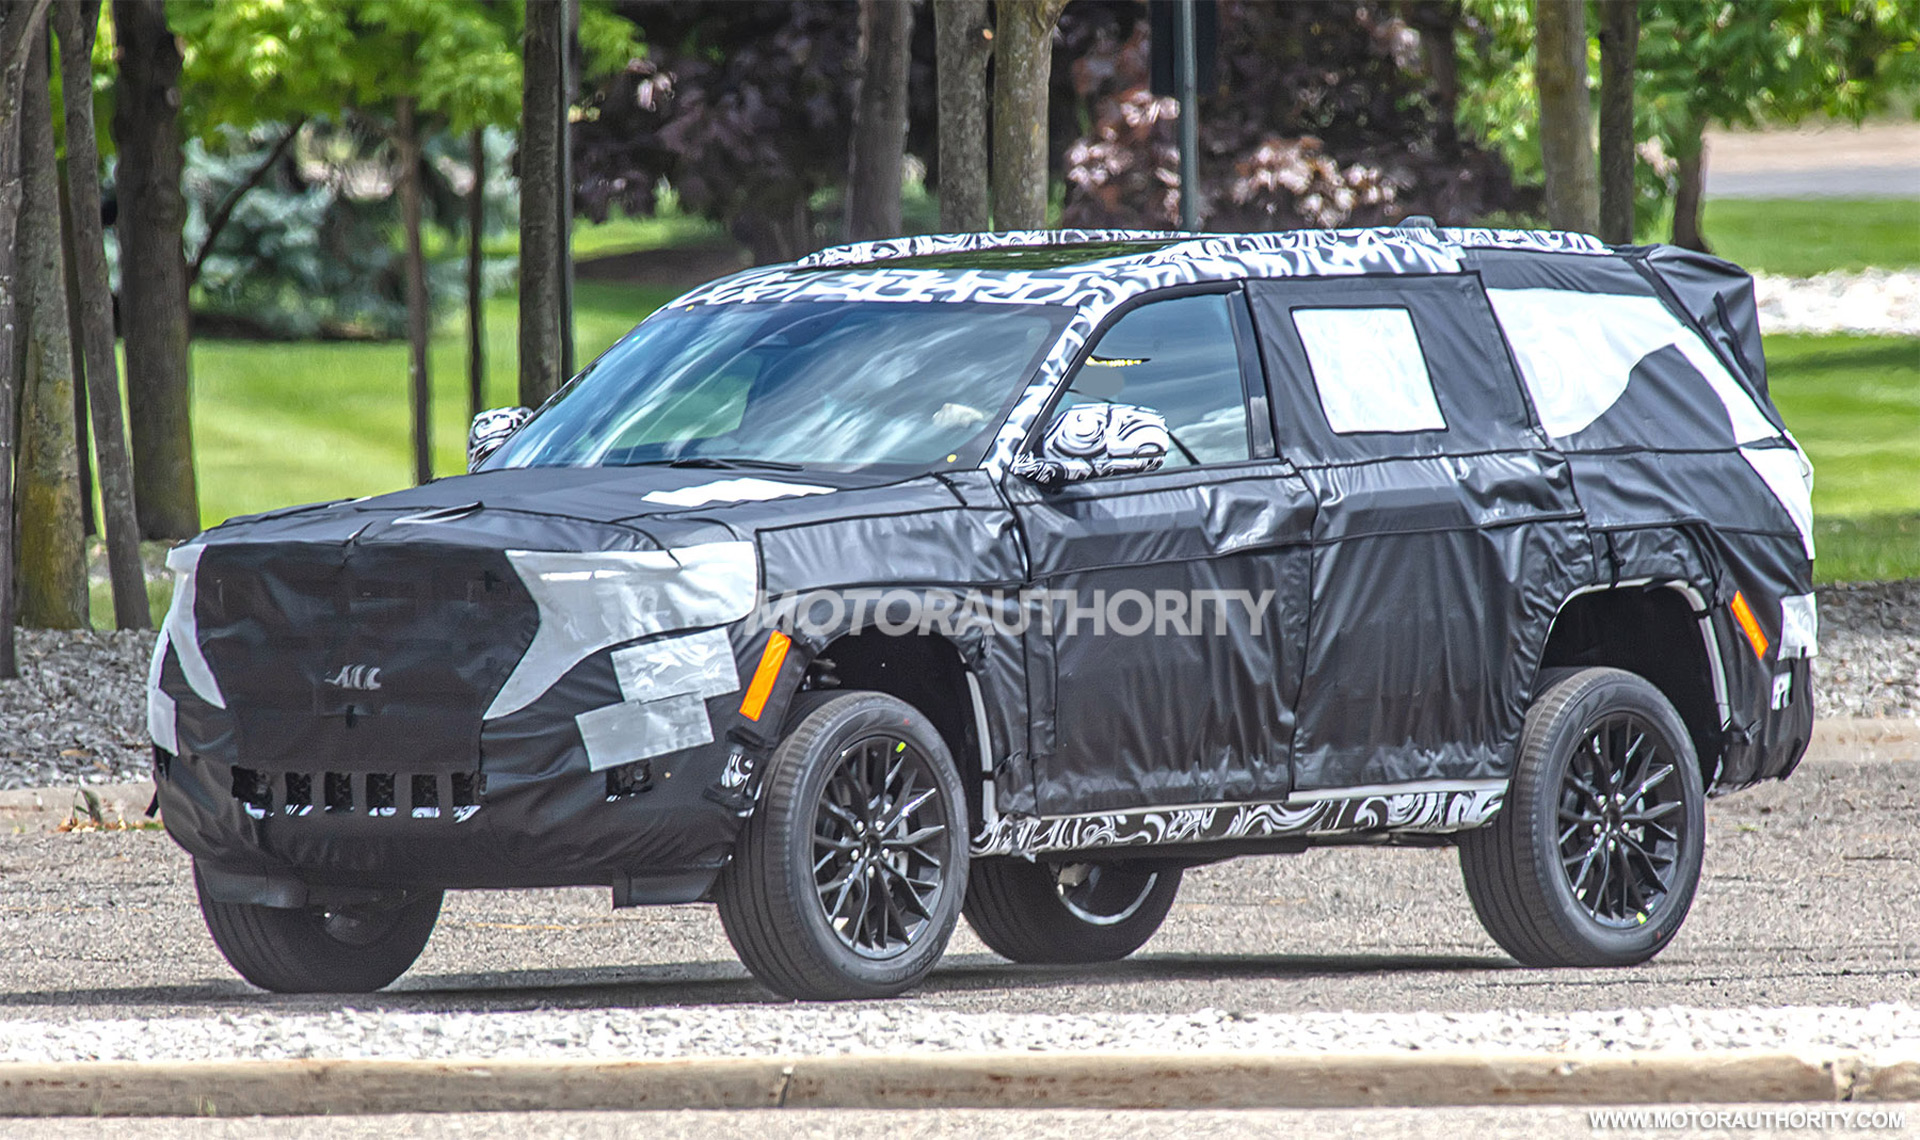 2021 - [Jeep] Grand Cherokee  - Page 2 2022-jeep-grand-cherokee-based-3-row-suv-spy-shots--photo-credit-s-baldauf-sb-medien_100754580_h